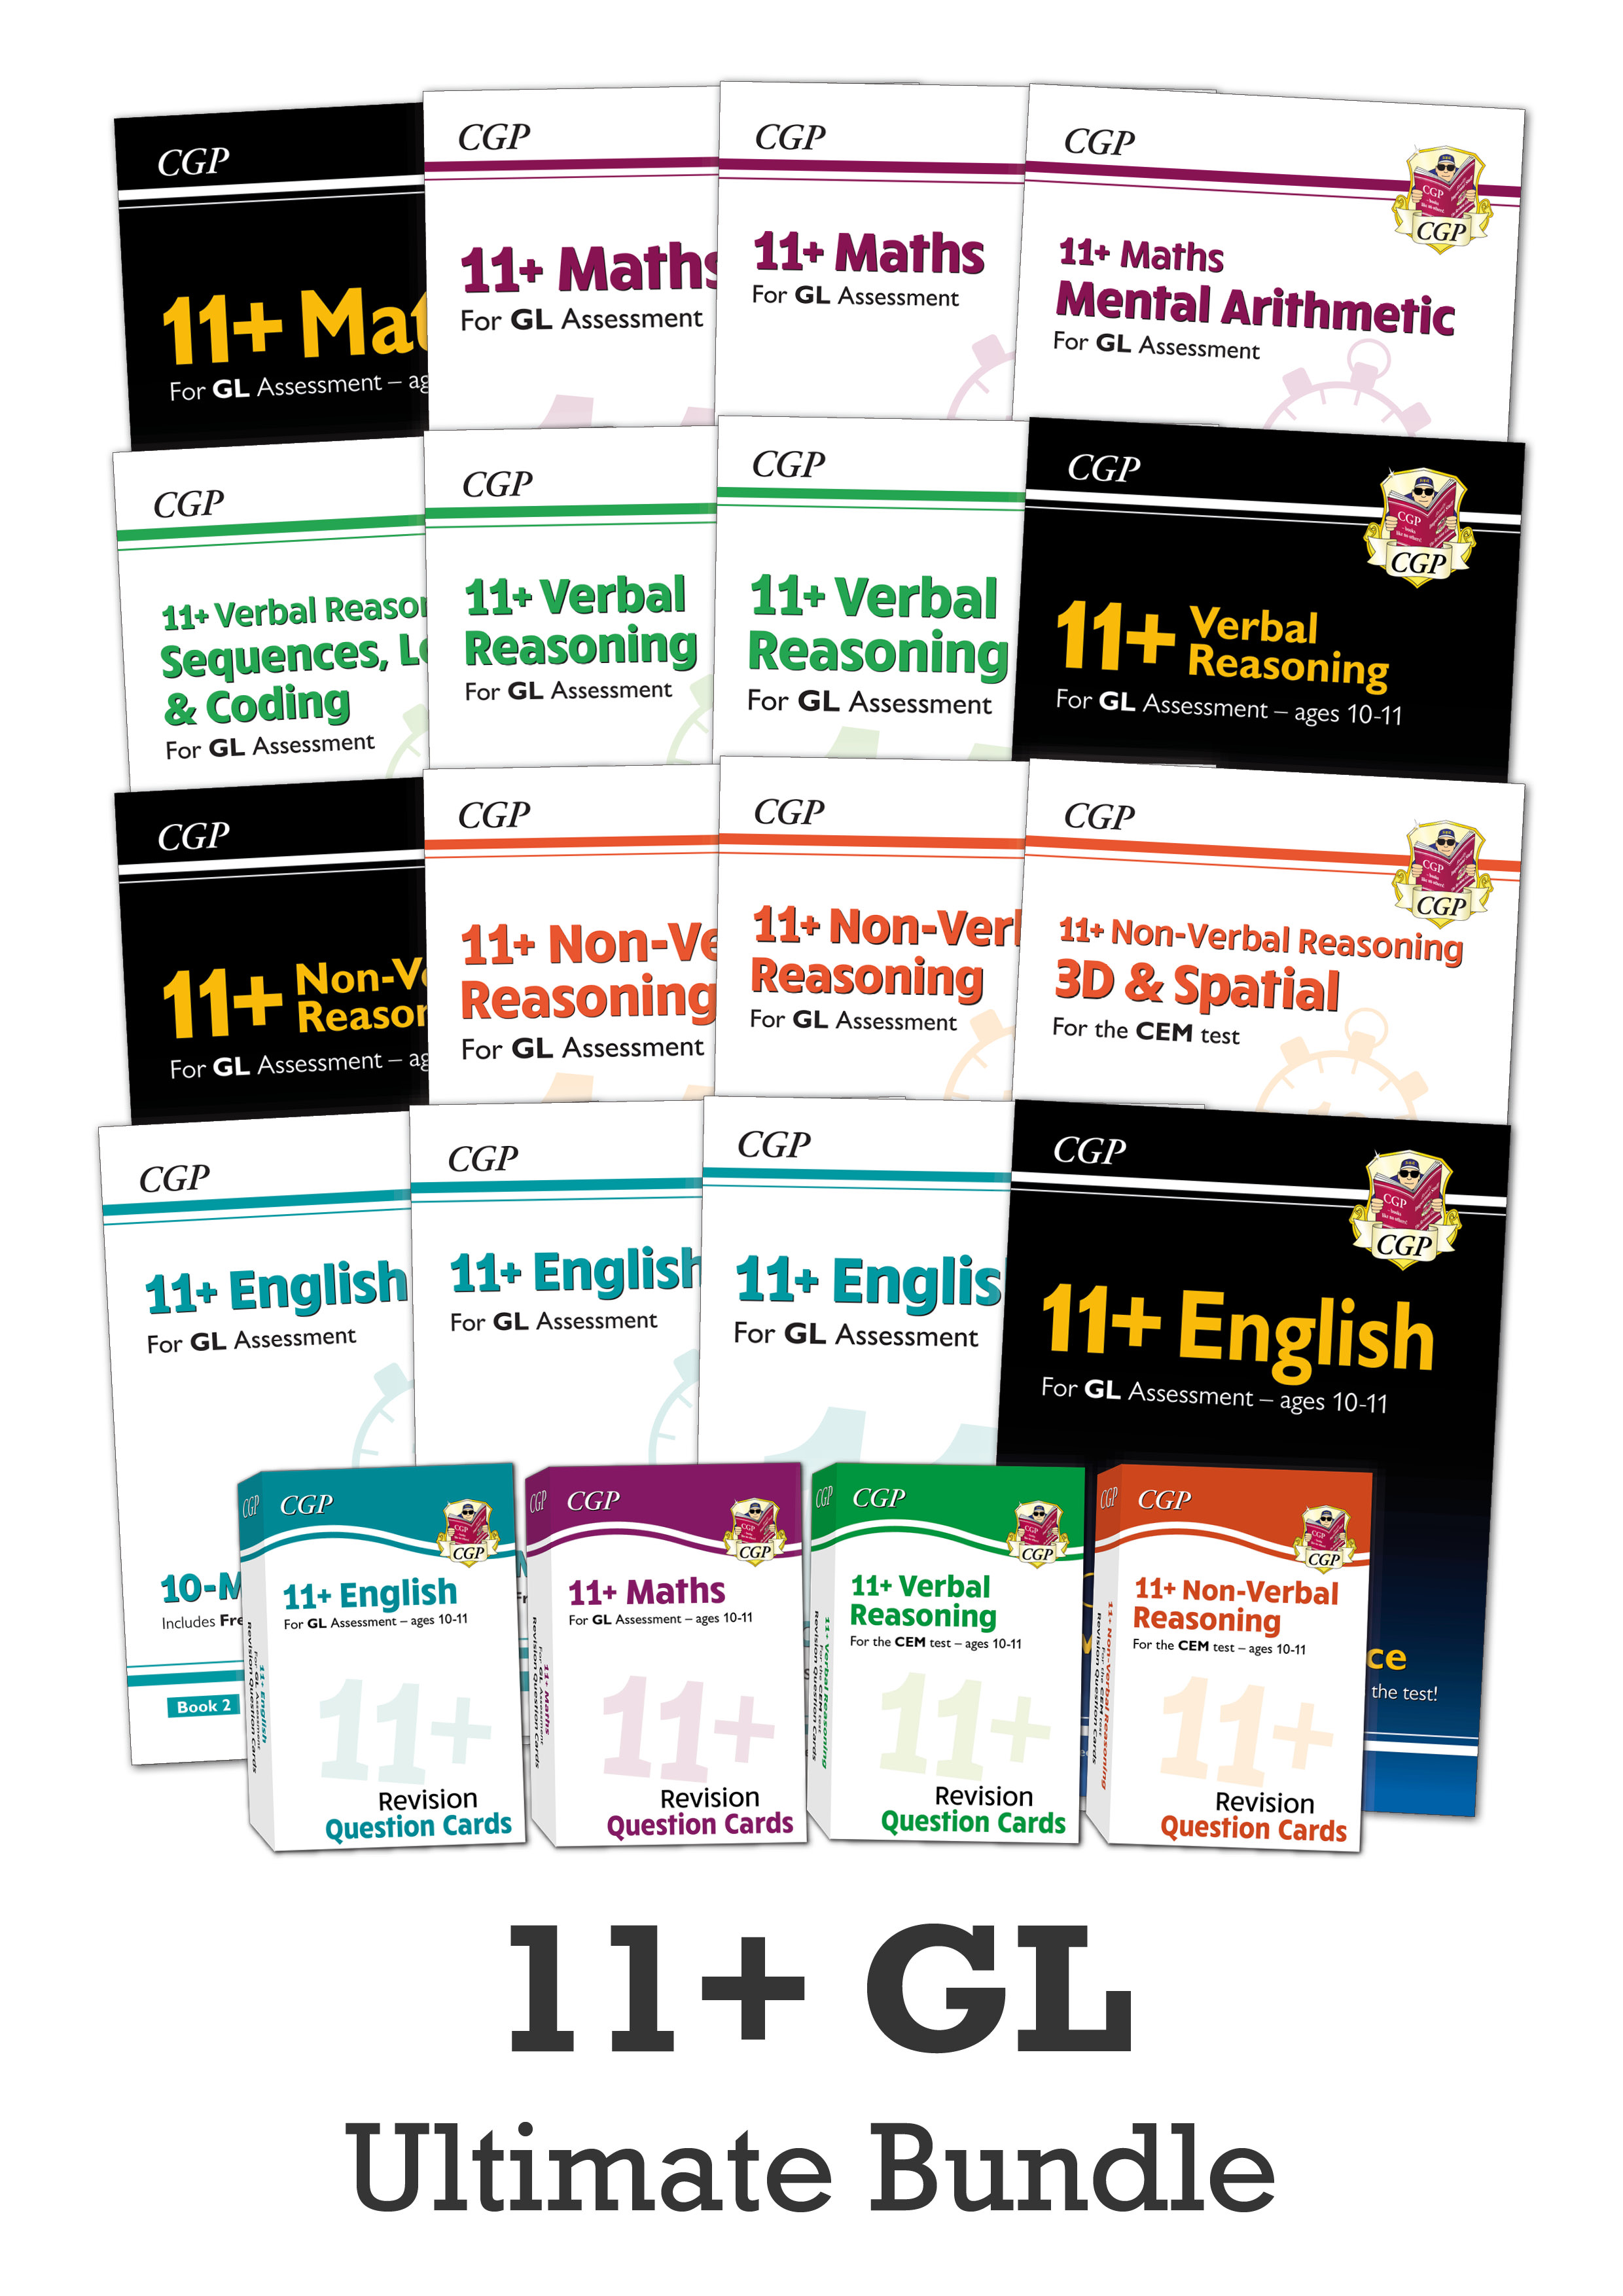 EL6BE5 - New 11+ GL Study & Practice for Ages 10-11 - 20-book money-saving Bundle